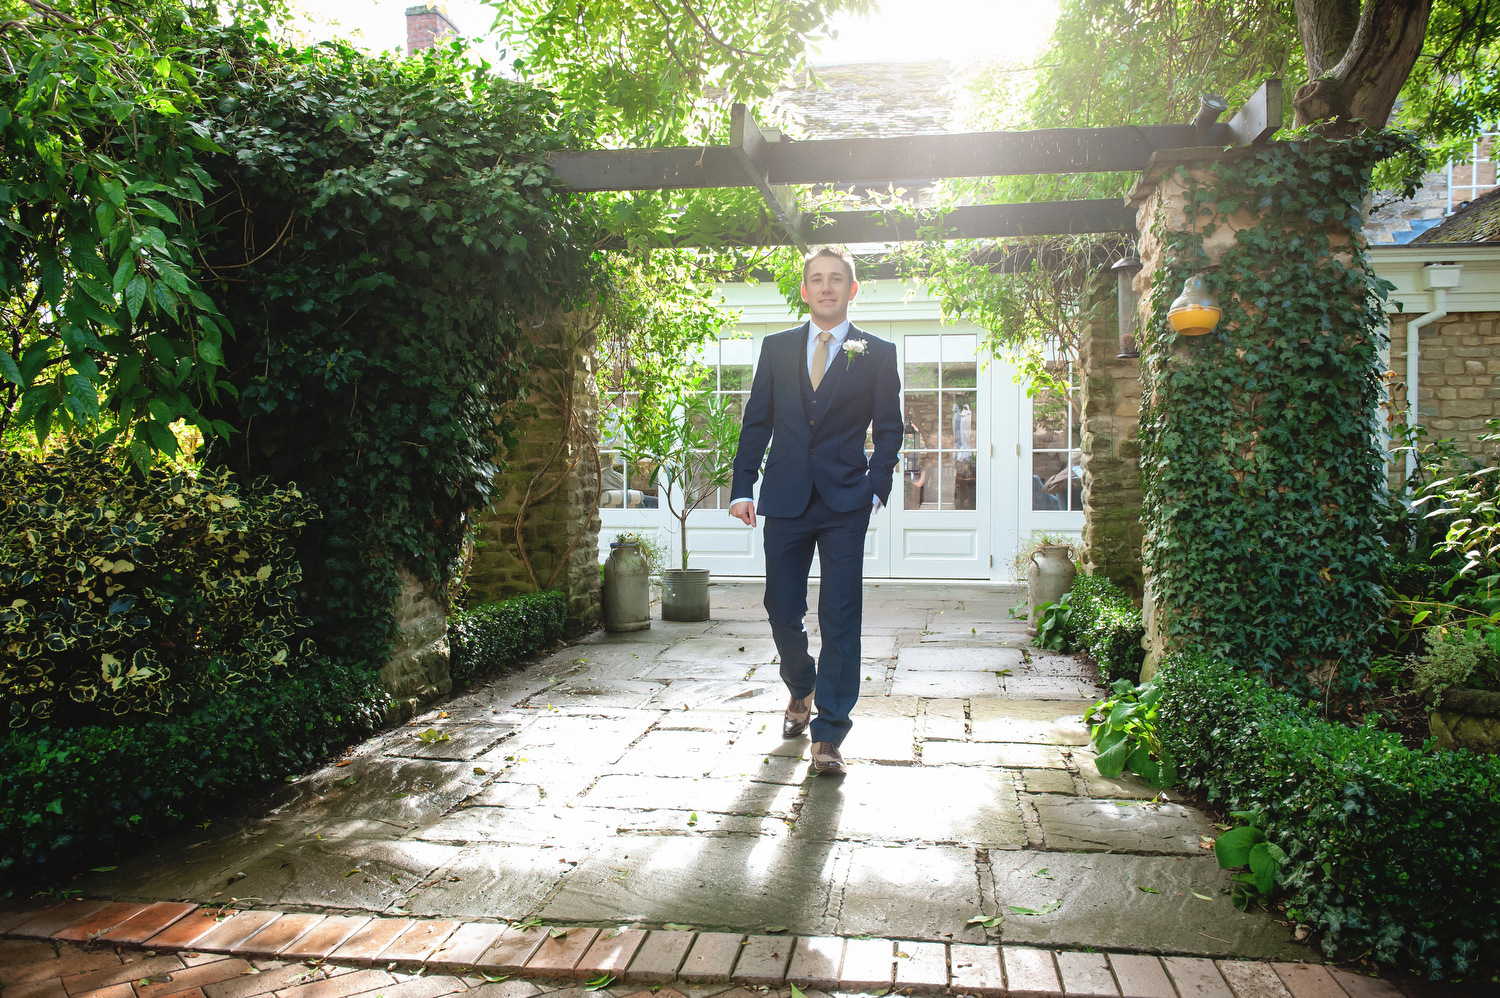 charnwood_weddings_barnsdale_lodge_rutland_dave_j92ane.JPG